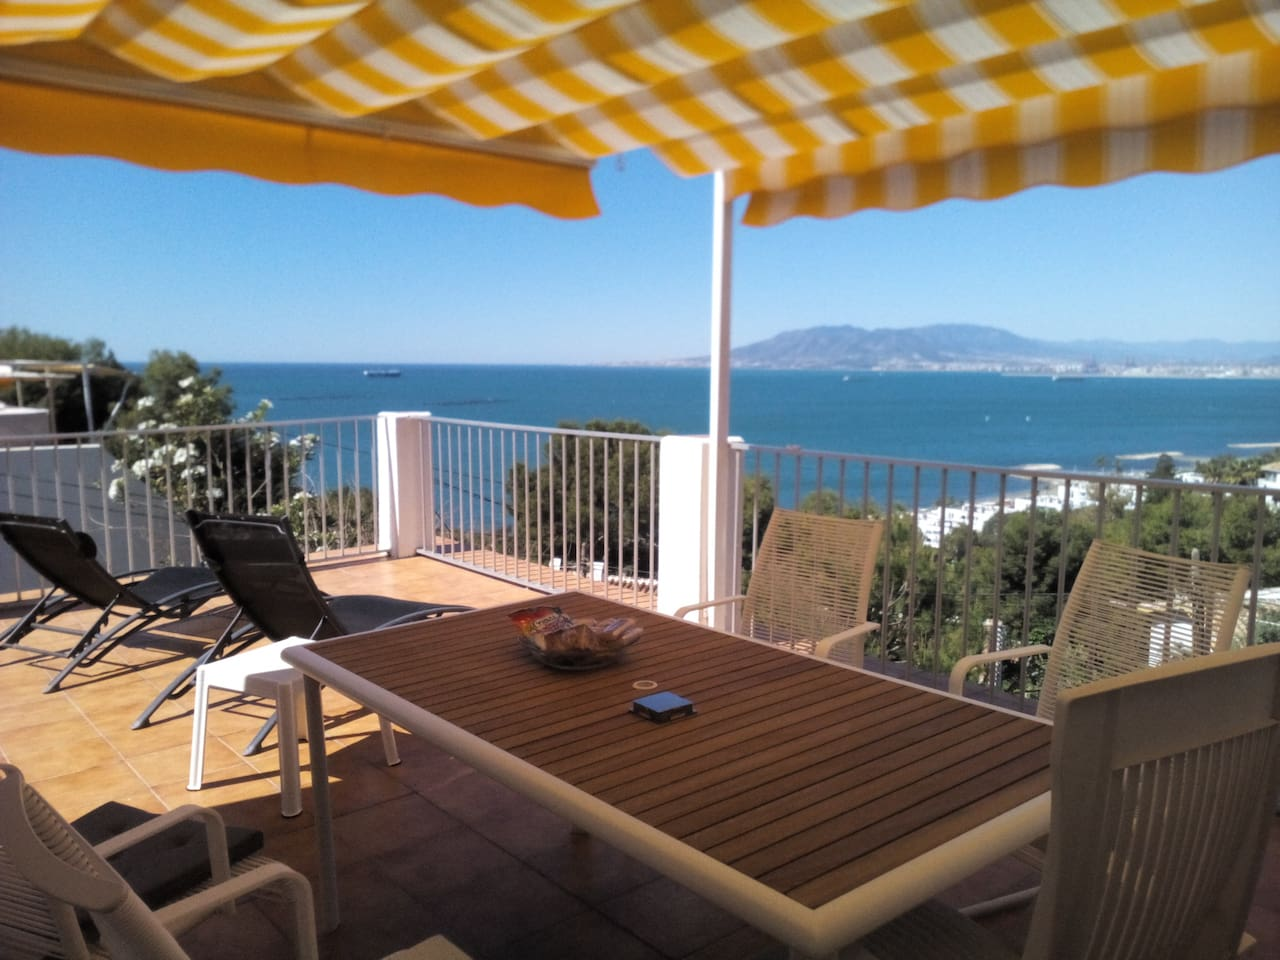 The terrace & the views over Málaga Bay and Costa del Sol